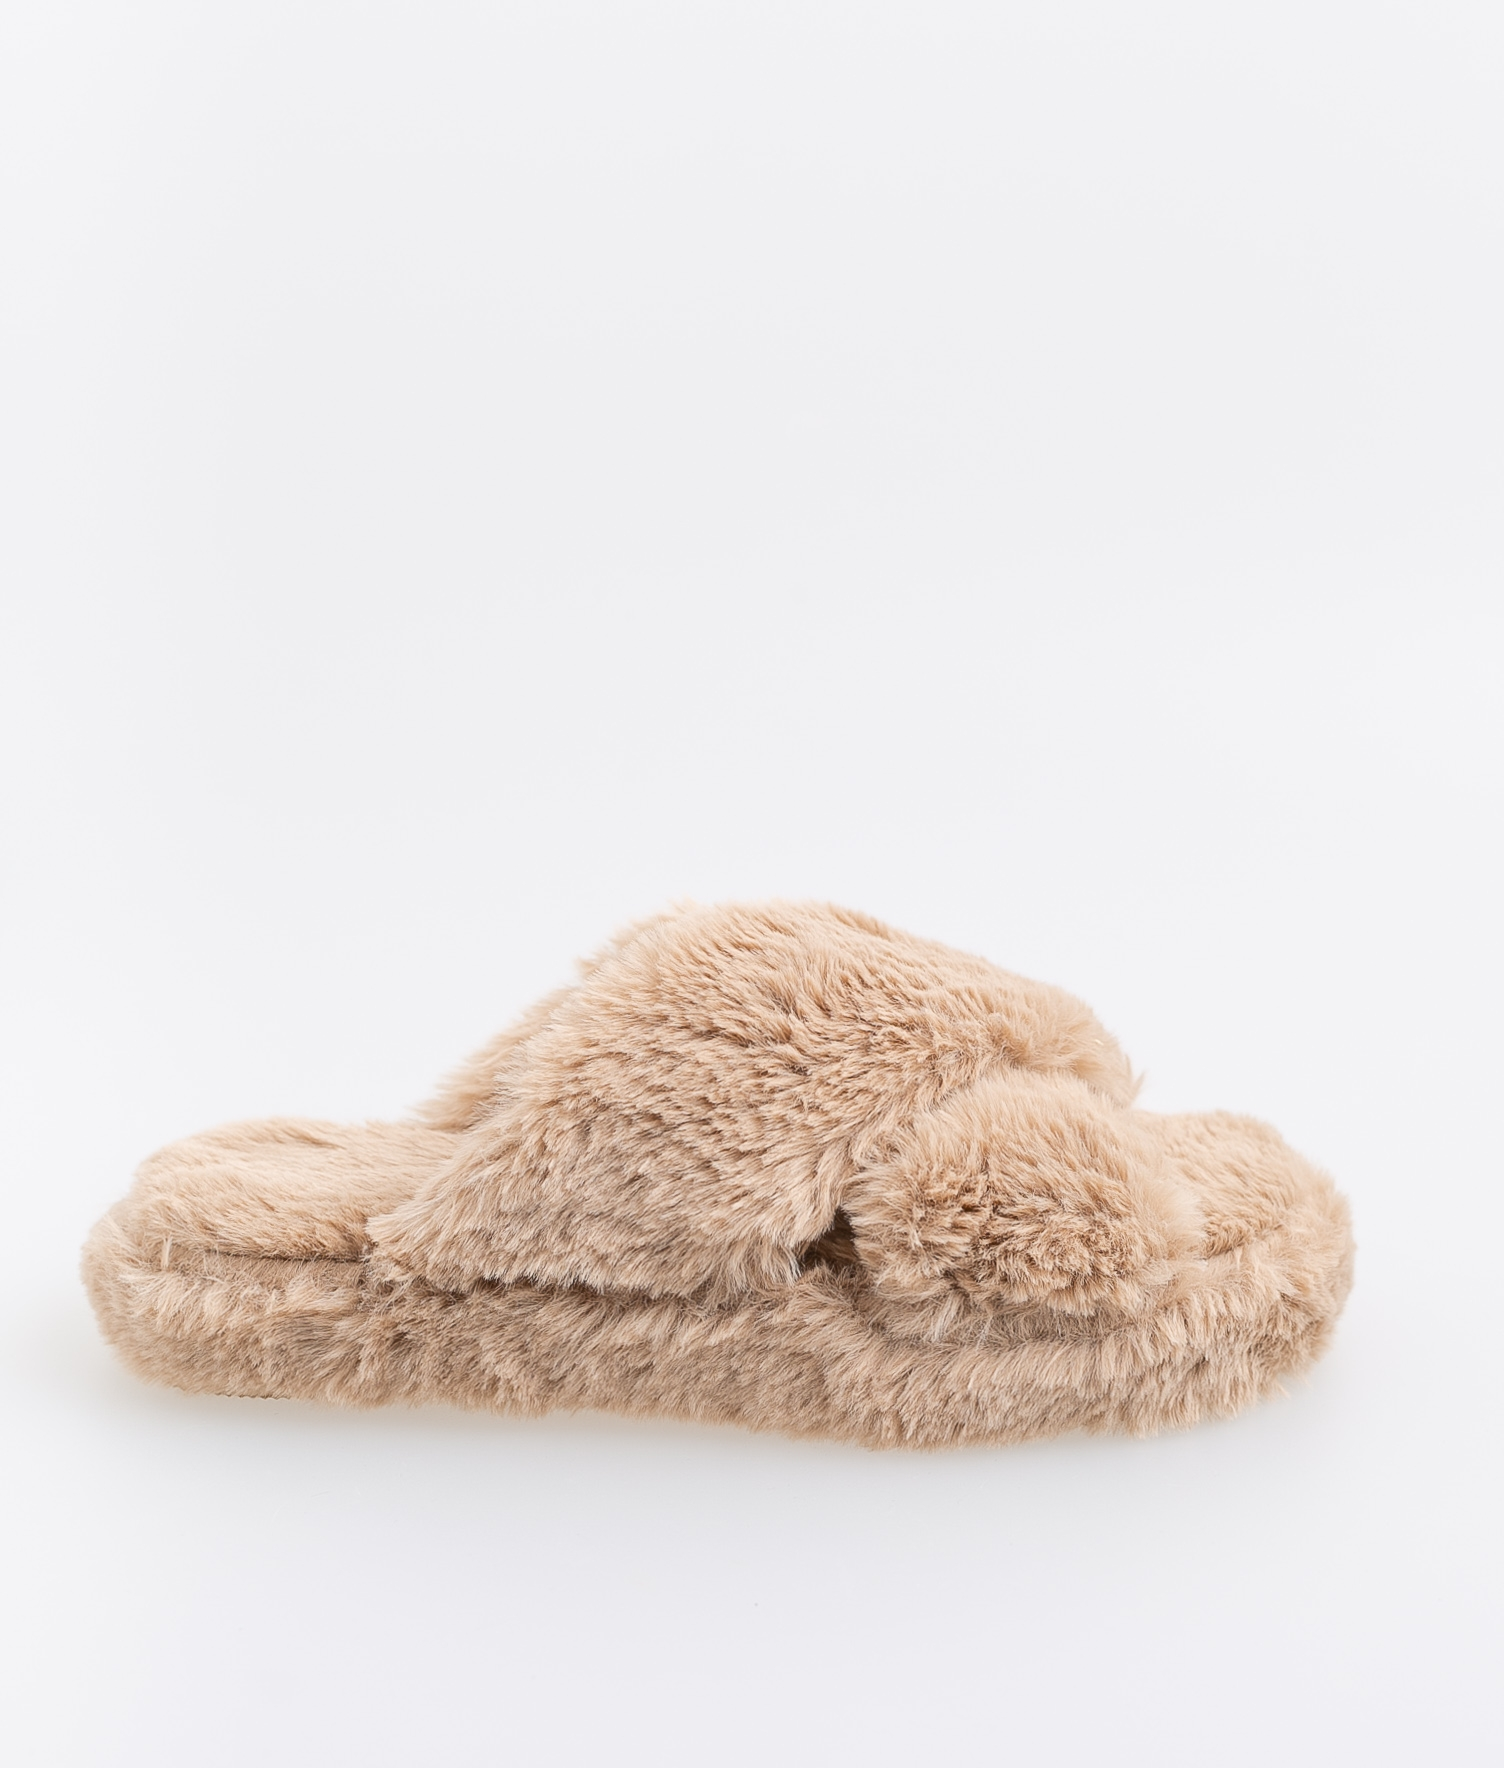 PIELA SLIPPERS - KAKI